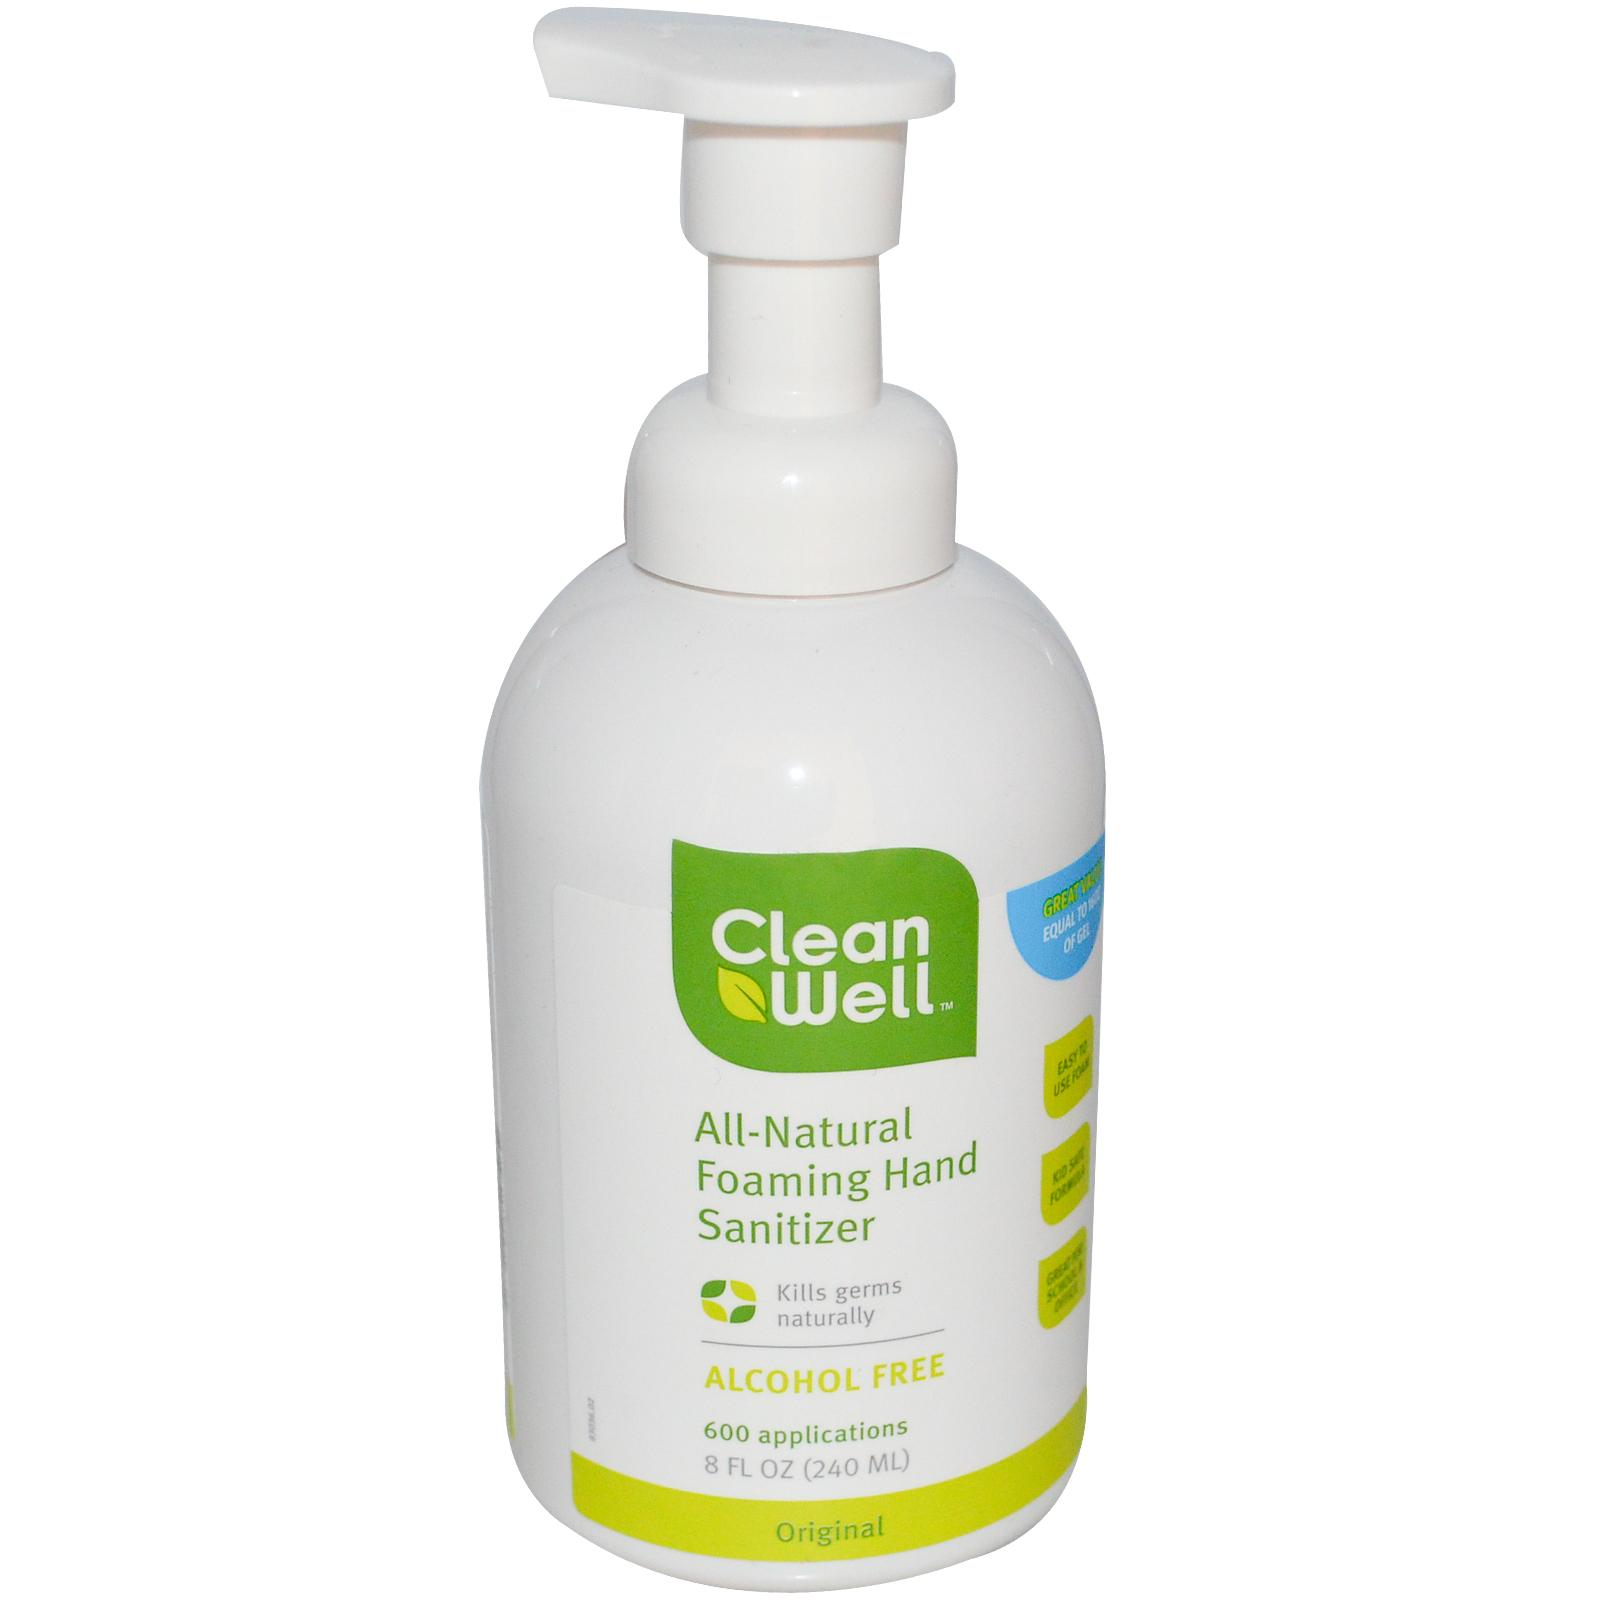 CleanWell All-Natural Foaming Hand Sanitizer - 8 oz: HF